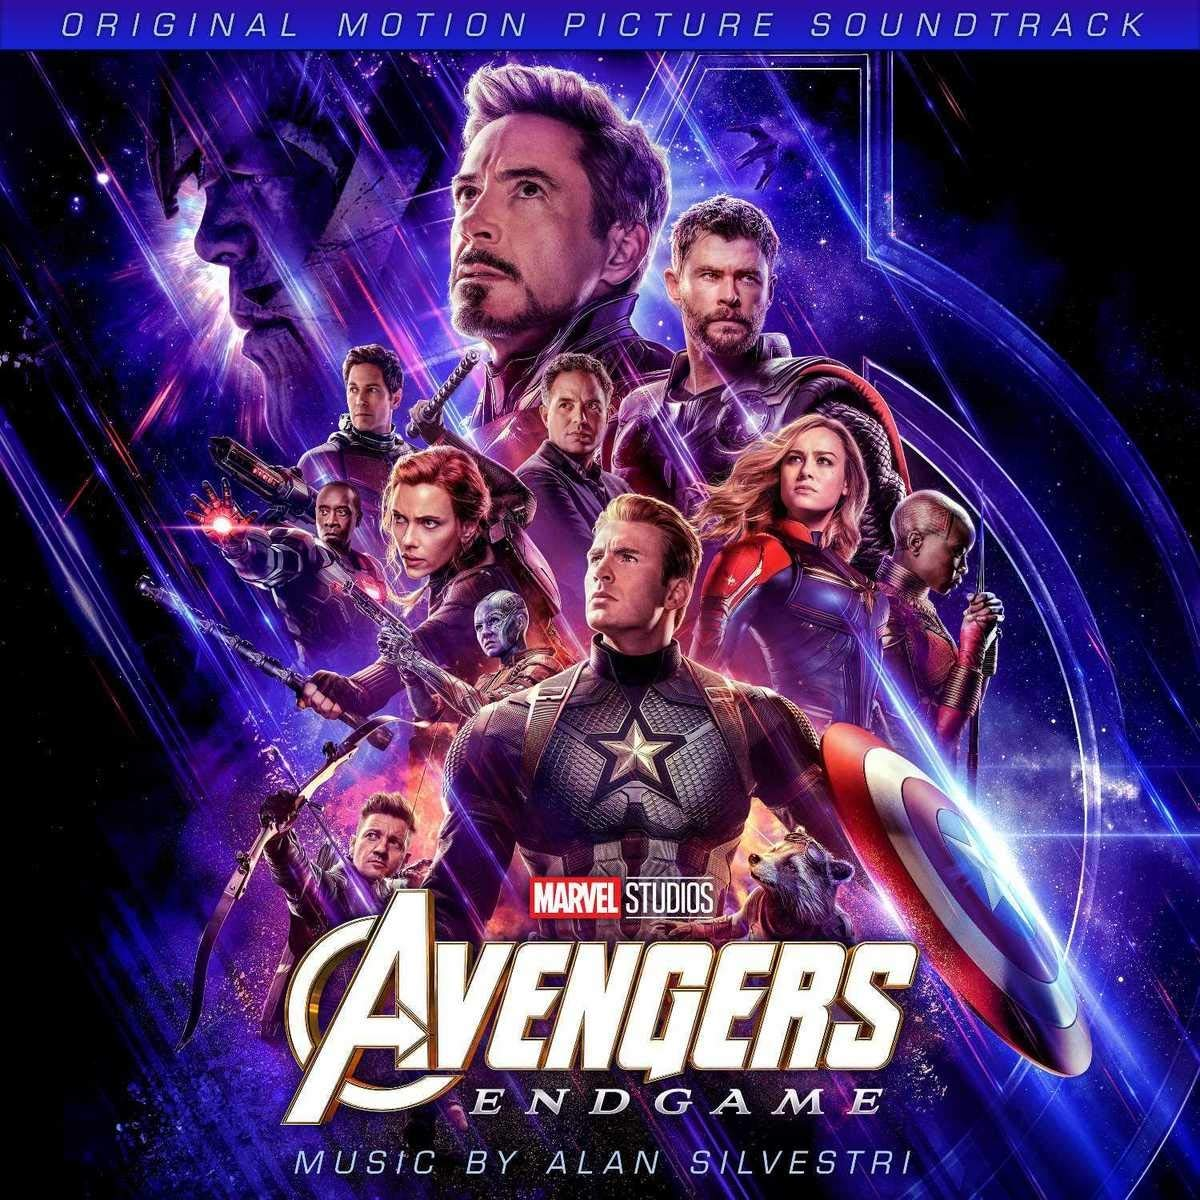 CD Shop - SILVESTRI ALAN AVENGERS: ENDGAME